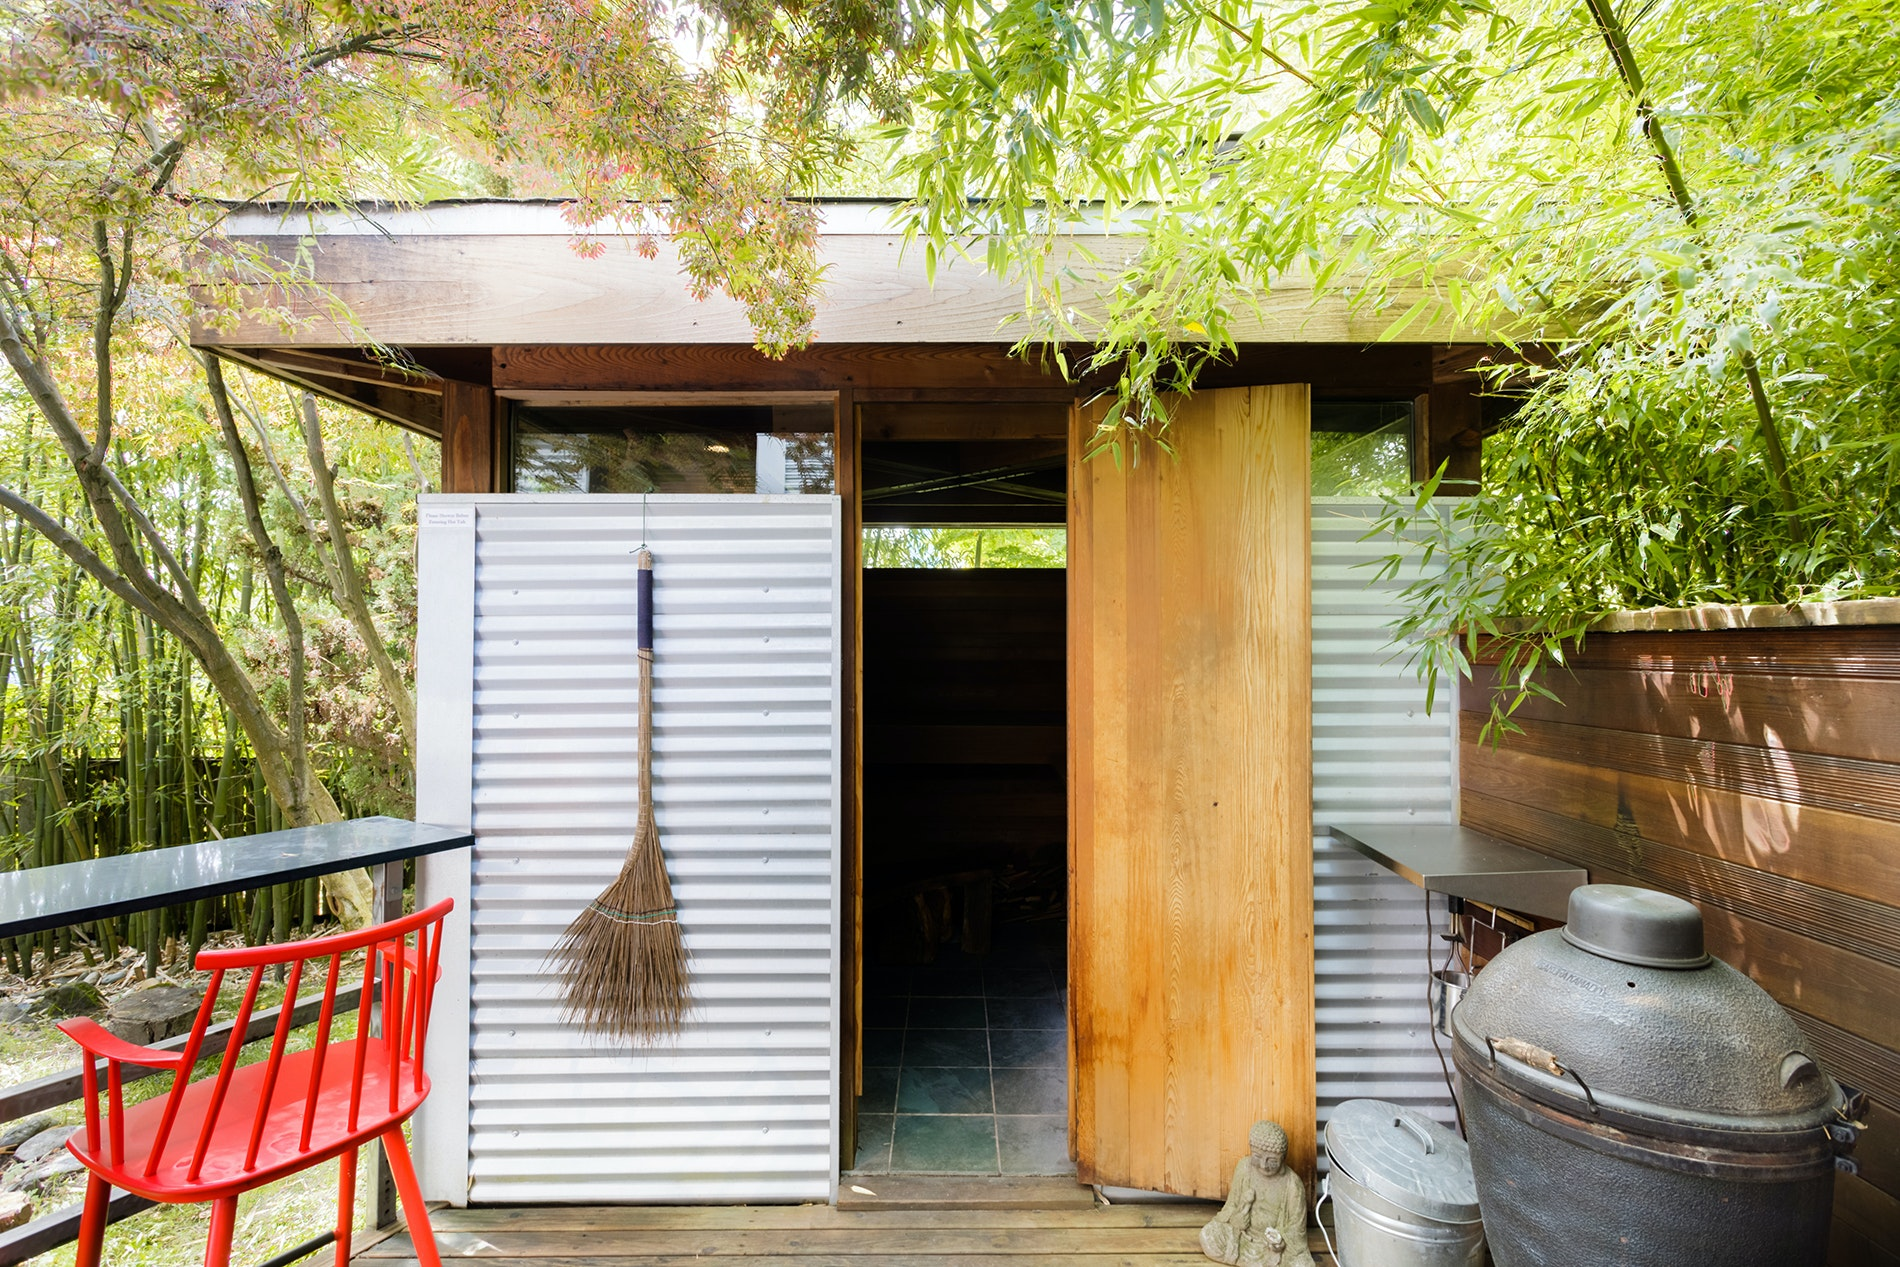 Get your R&R in at this Greenwood-based Airbnb, with its Zen-inspired offerings that include a private garden retreat, authentic Finnish sauna, and saltwater hot tub.